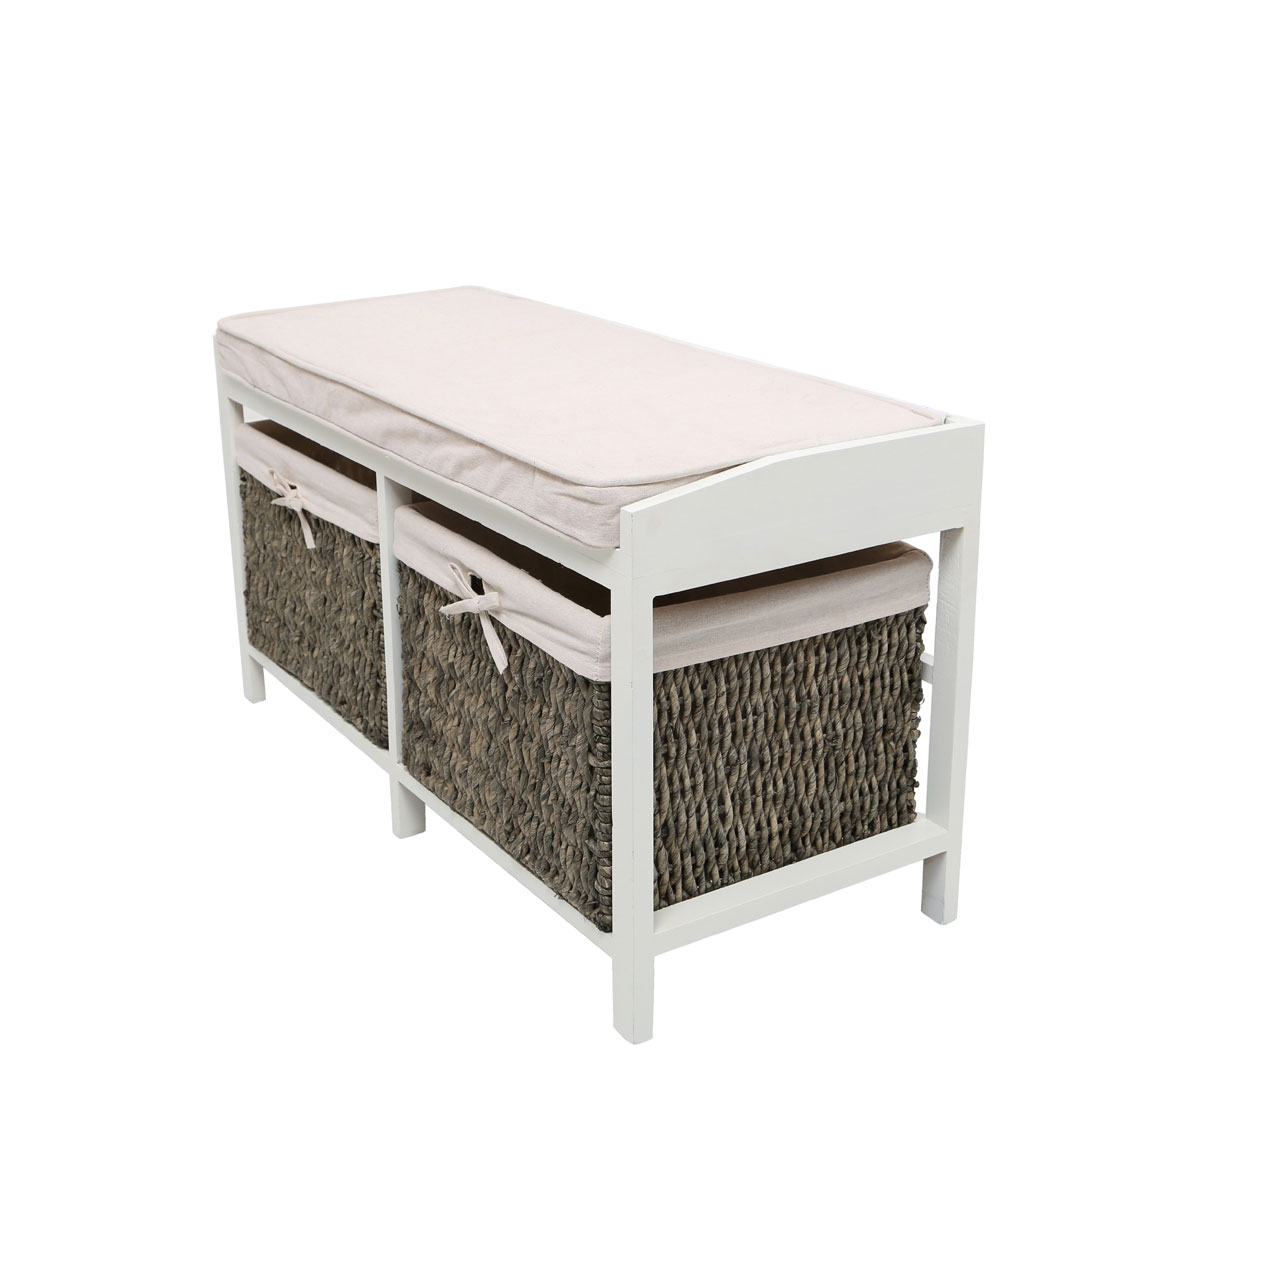 Rustic padded cream wooden storage bench with 2 cotton lined maize baskets ebay Bench with baskets